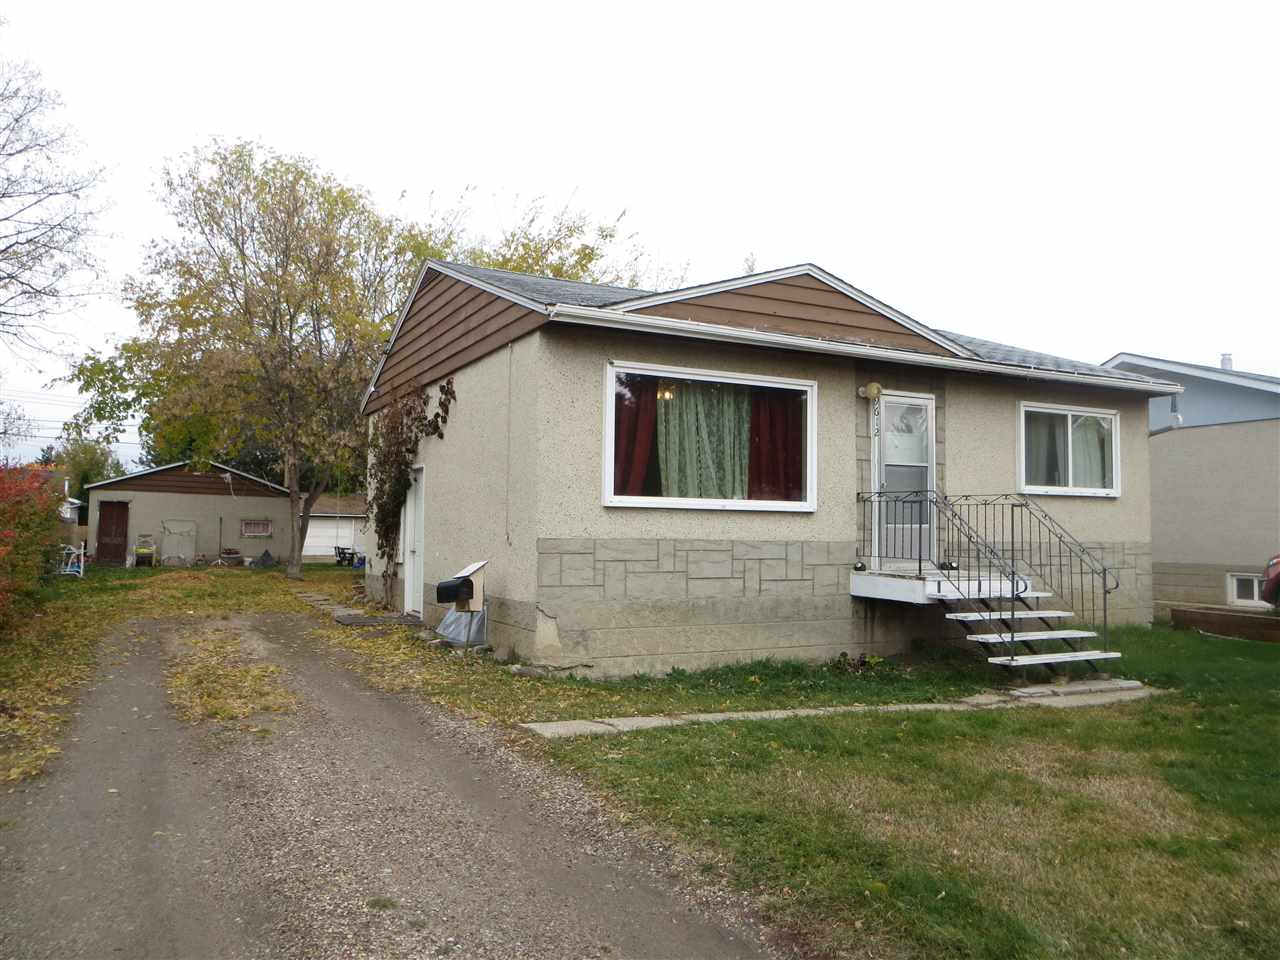 Excellent redevelopment opportunity!  50' x 148' lot on a quiet street steps to a park.  Many opportunities are bundled with this affordable home, rent it out, or knock it down and build or you can renovate.  Some of the more expensive upgrades have been completed to this home over the years including: windows, shingles, hot water tank, 100 amp electrical service.  Double garage is oversized, 20x24 with back lane access, and parking also is available from the front yard.  Total of 3 bedrooms (2 up and 1 down).  Quicker possession is also possible (November 1st).